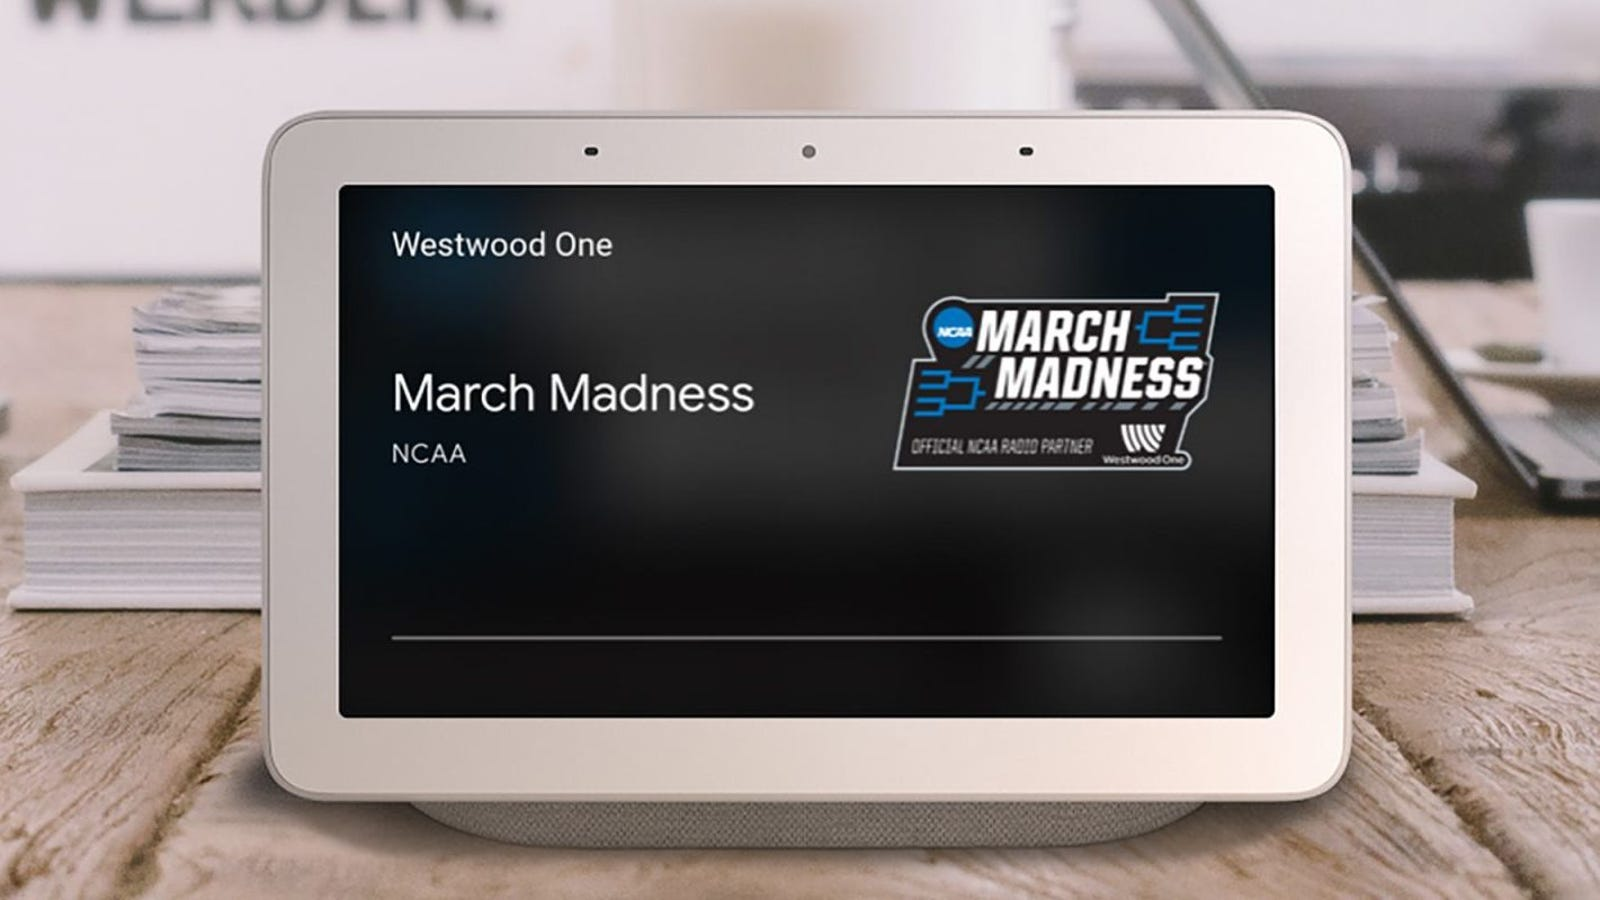 Listen to All March Madness Games Live With Google Home and Google Assistant - Lifehacker